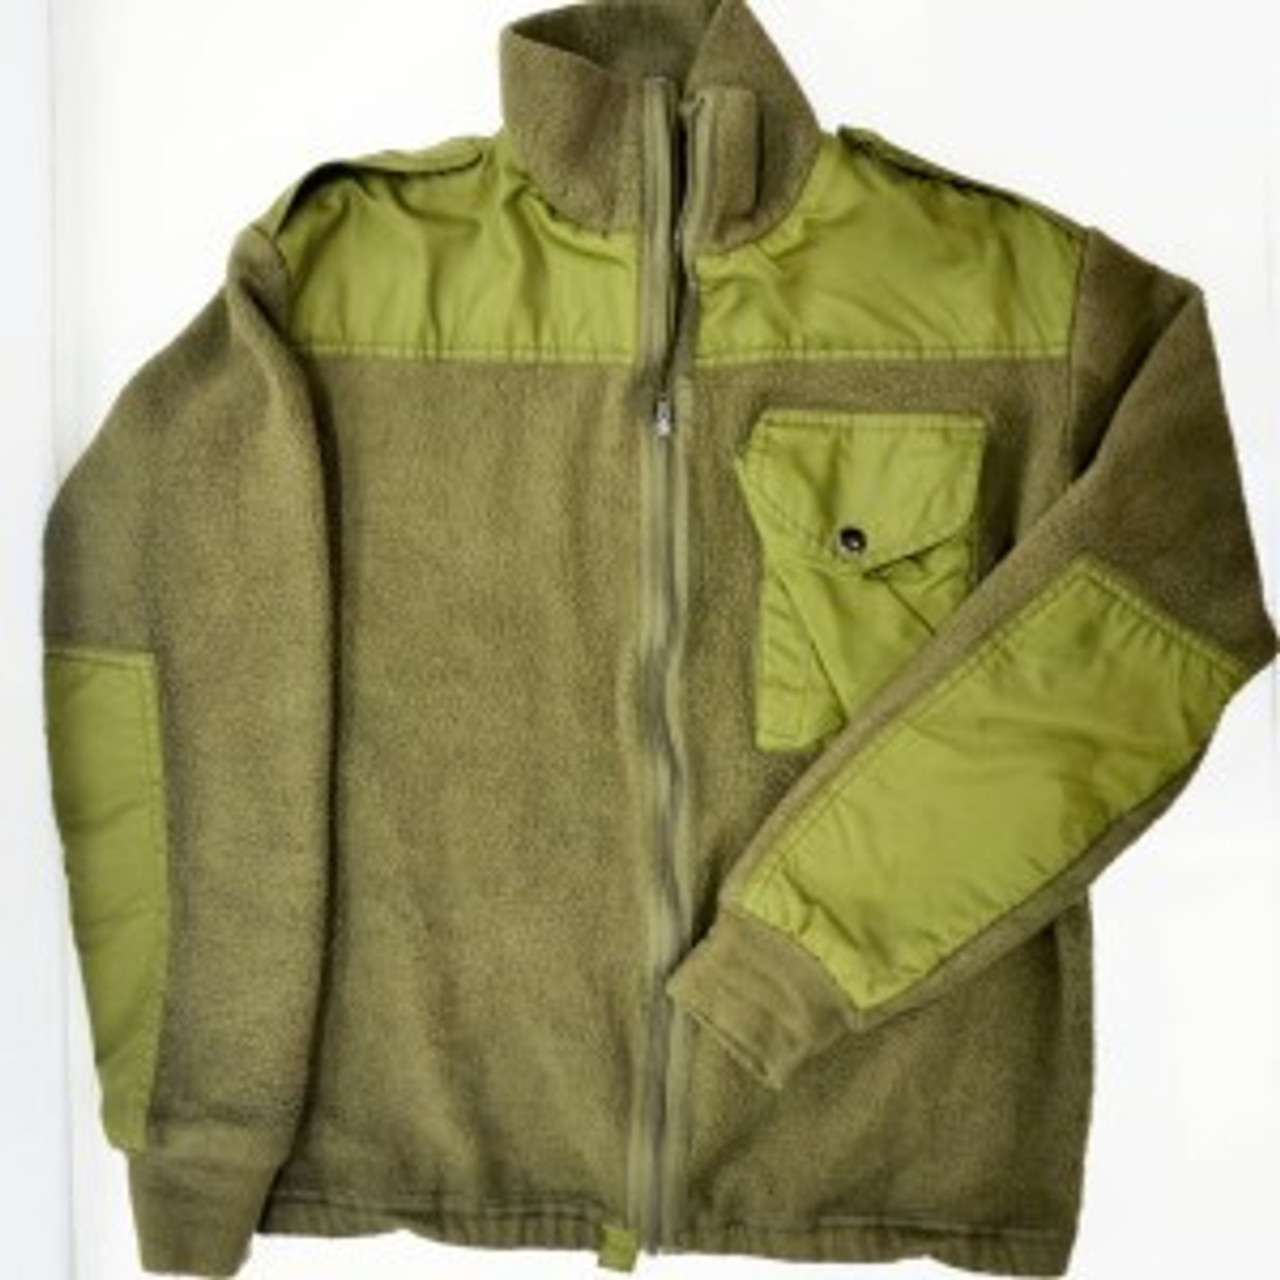 Canadian Military Issue Fleece Jacket - Used